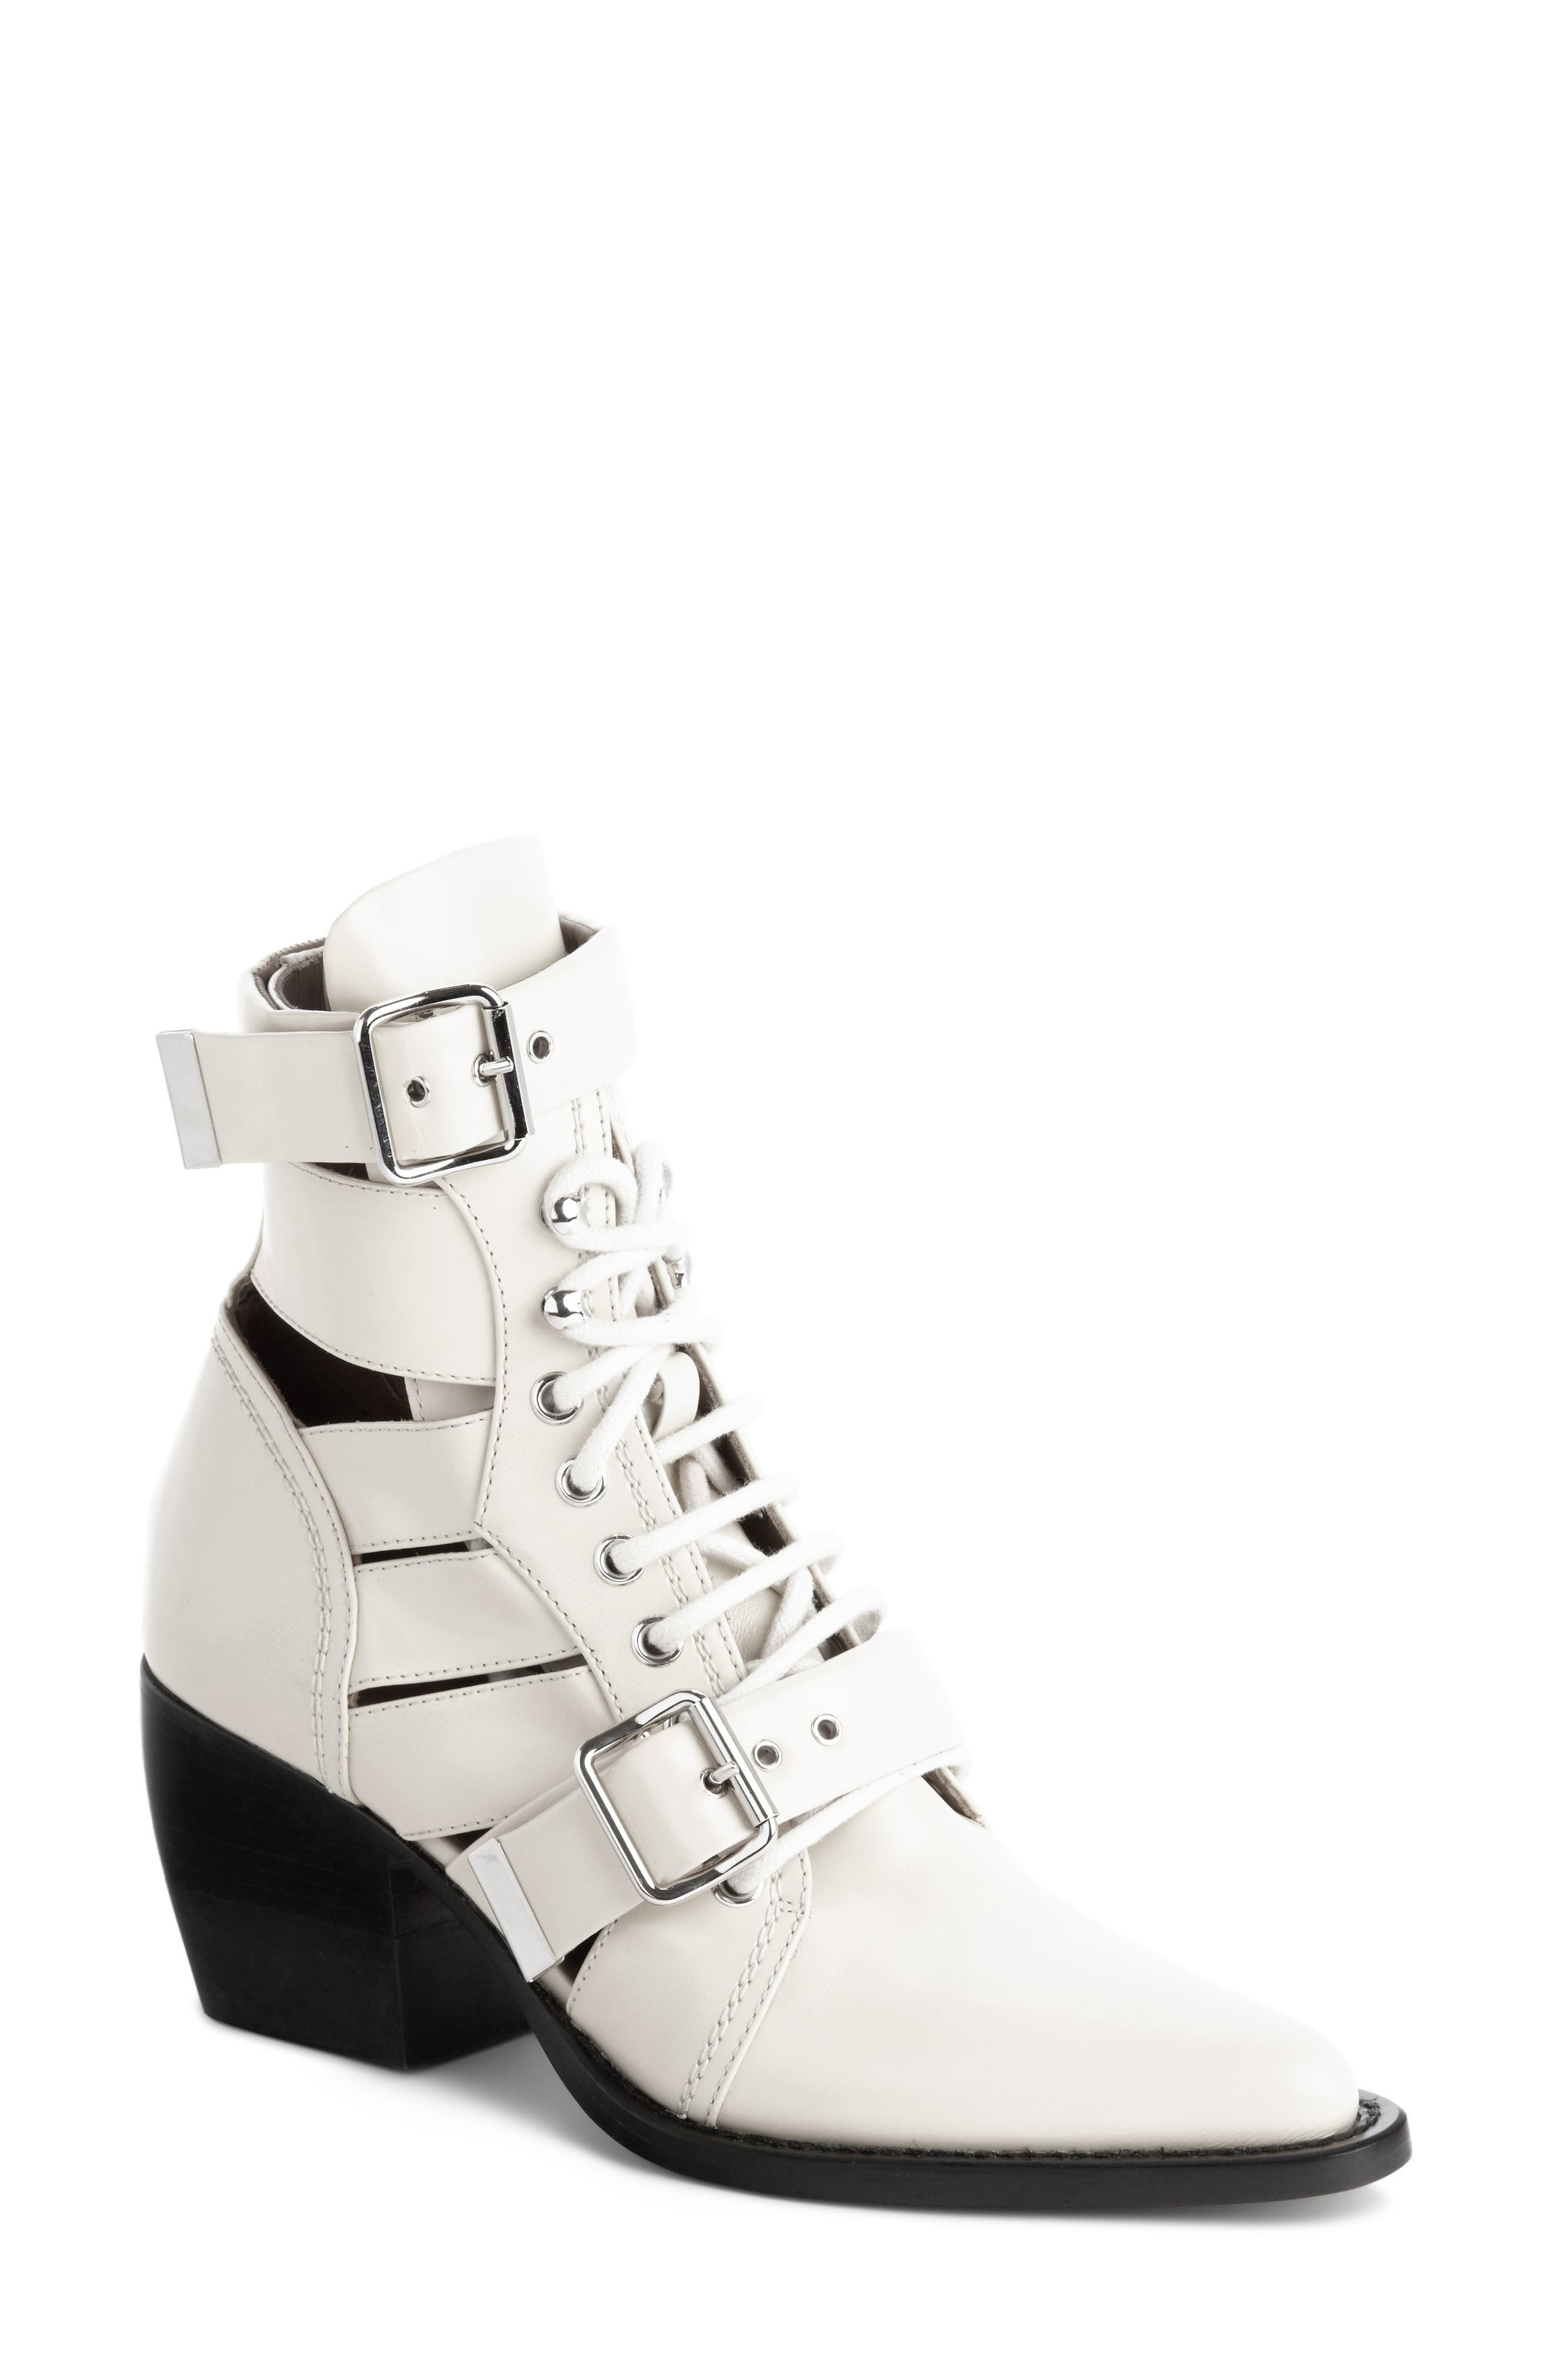 Chloe Rylee Caged Pointy Toe Boot, White